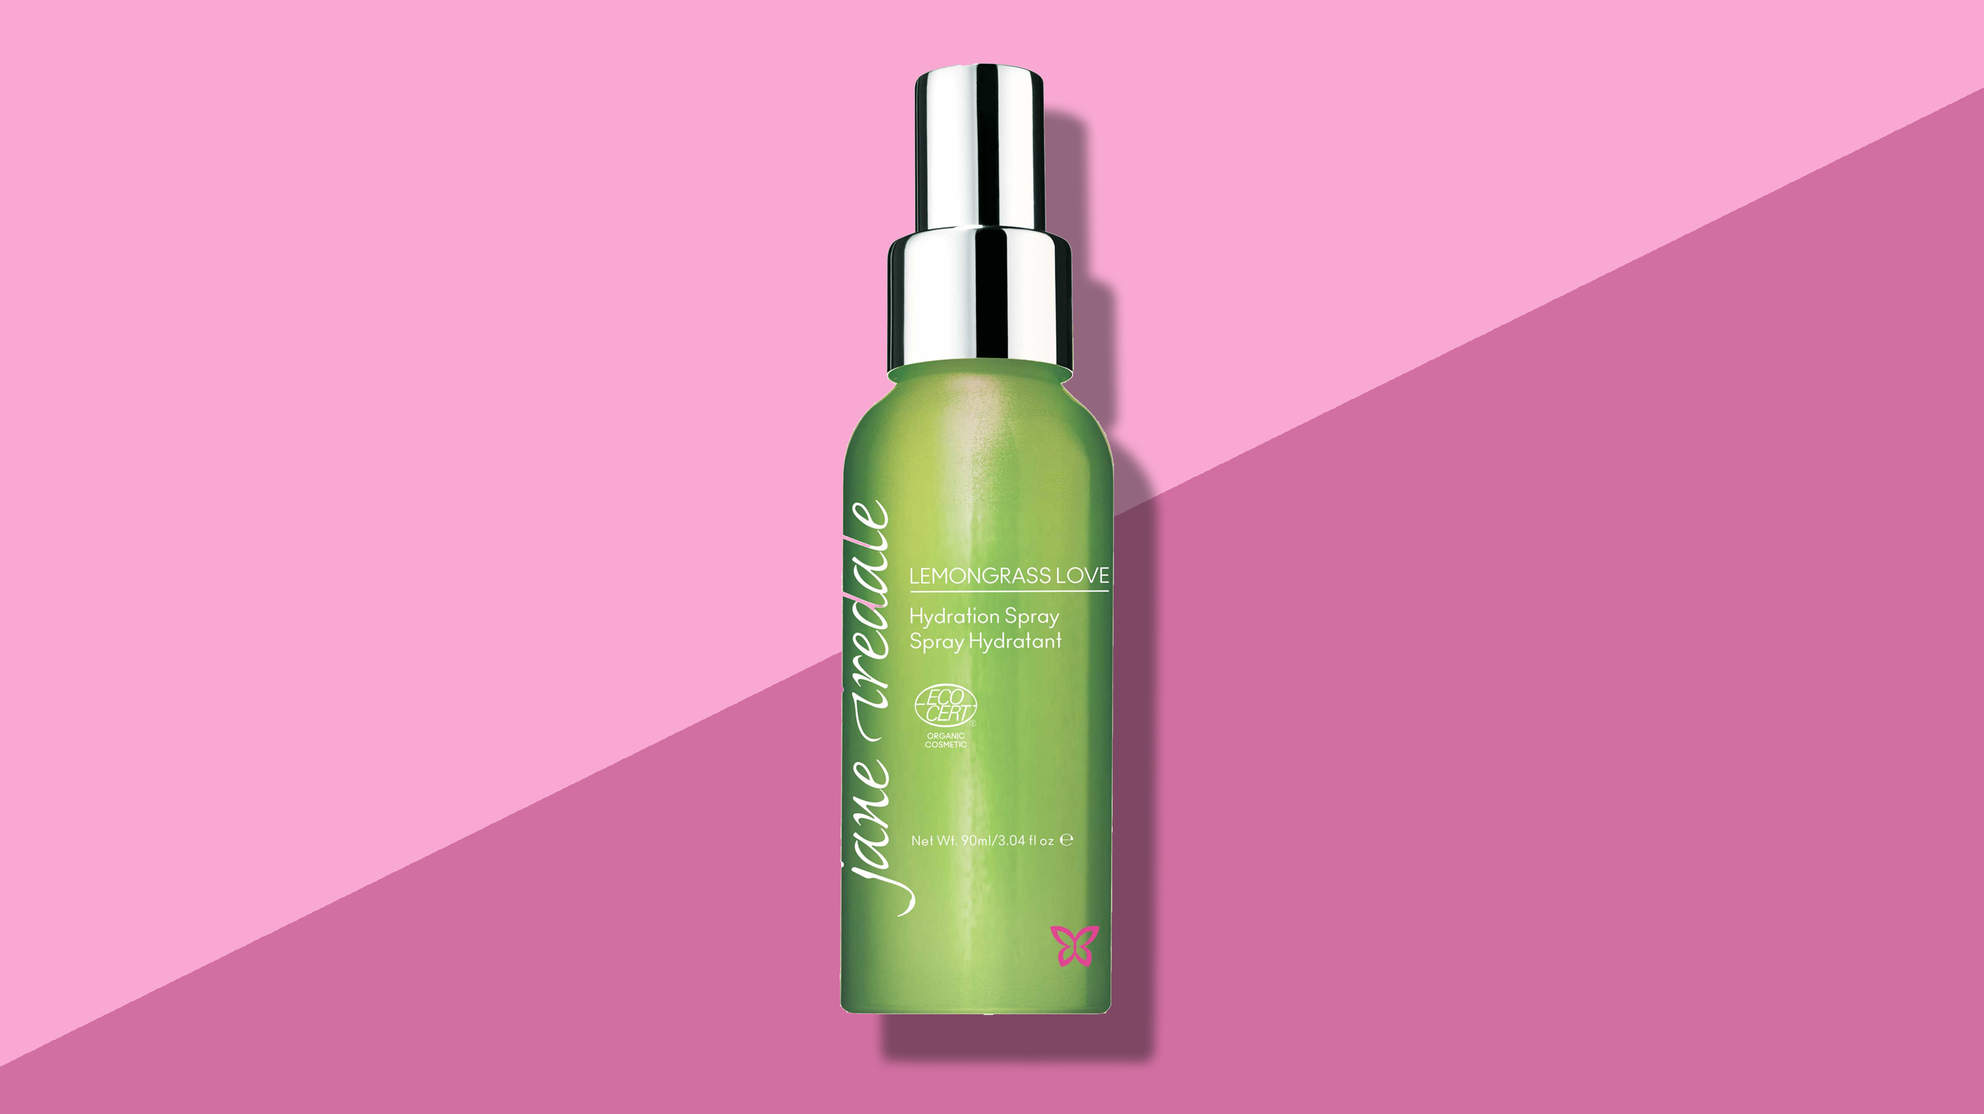 lemongrass-love-hydration-spray-natural